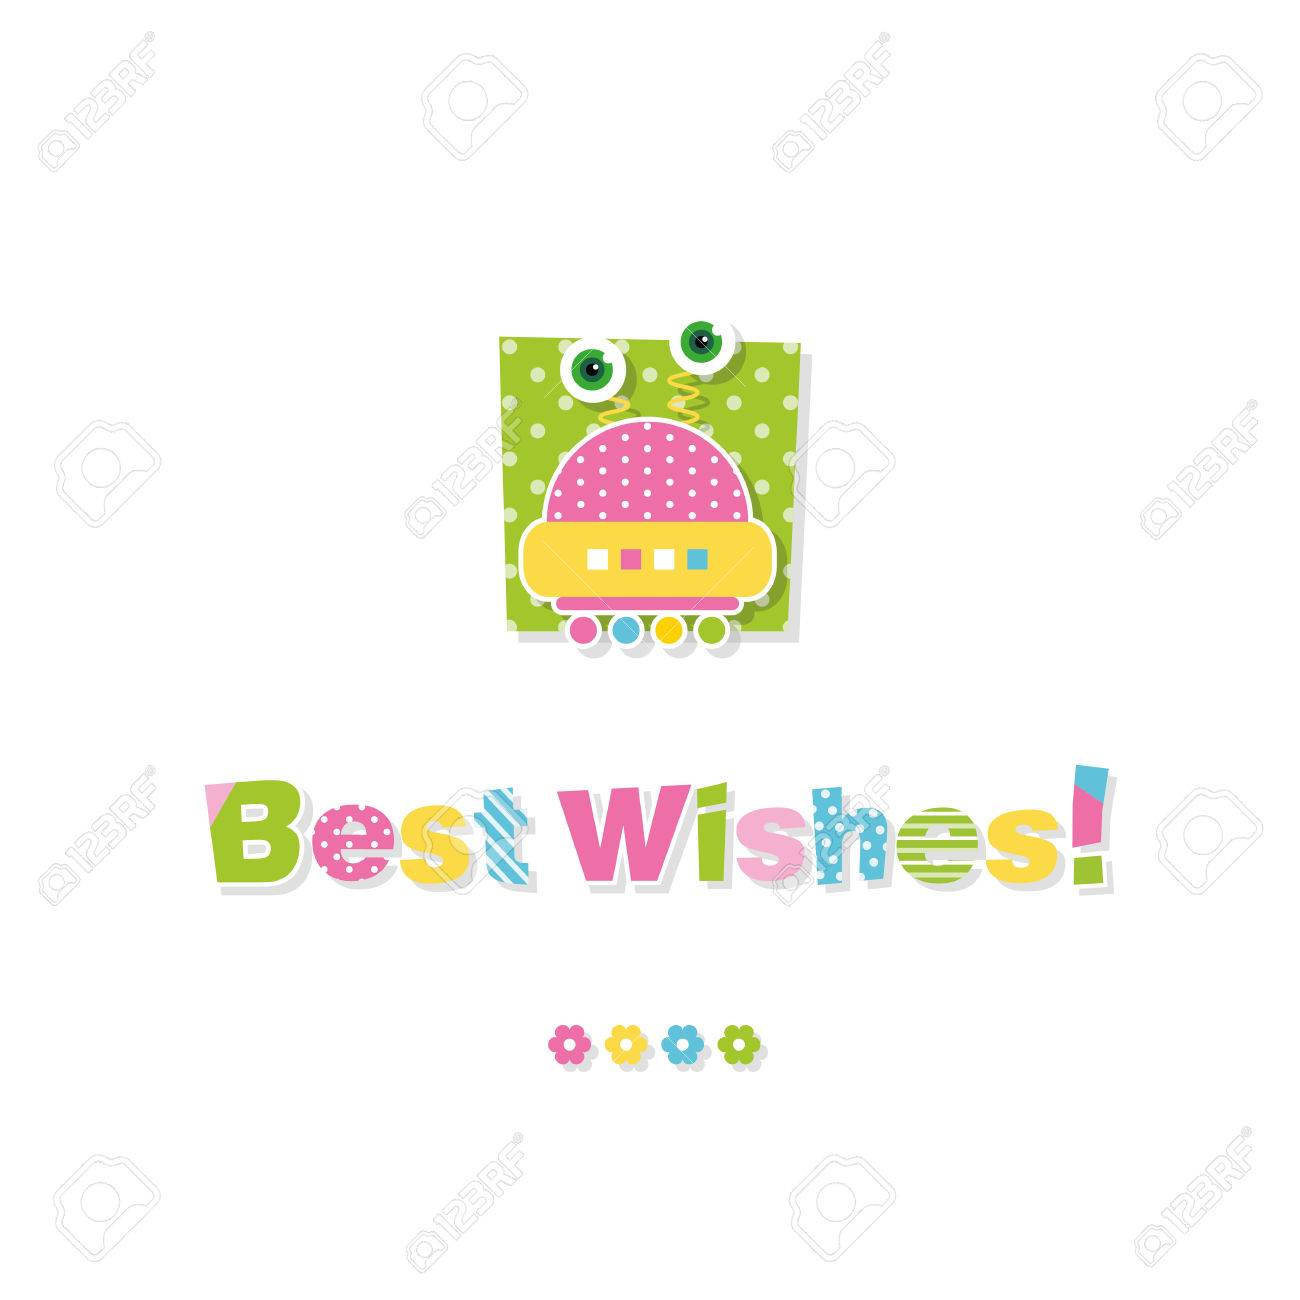 Cute baby robot best wishes greeting card royalty free cliparts cute baby robot best wishes greeting card stock vector 32699984 m4hsunfo